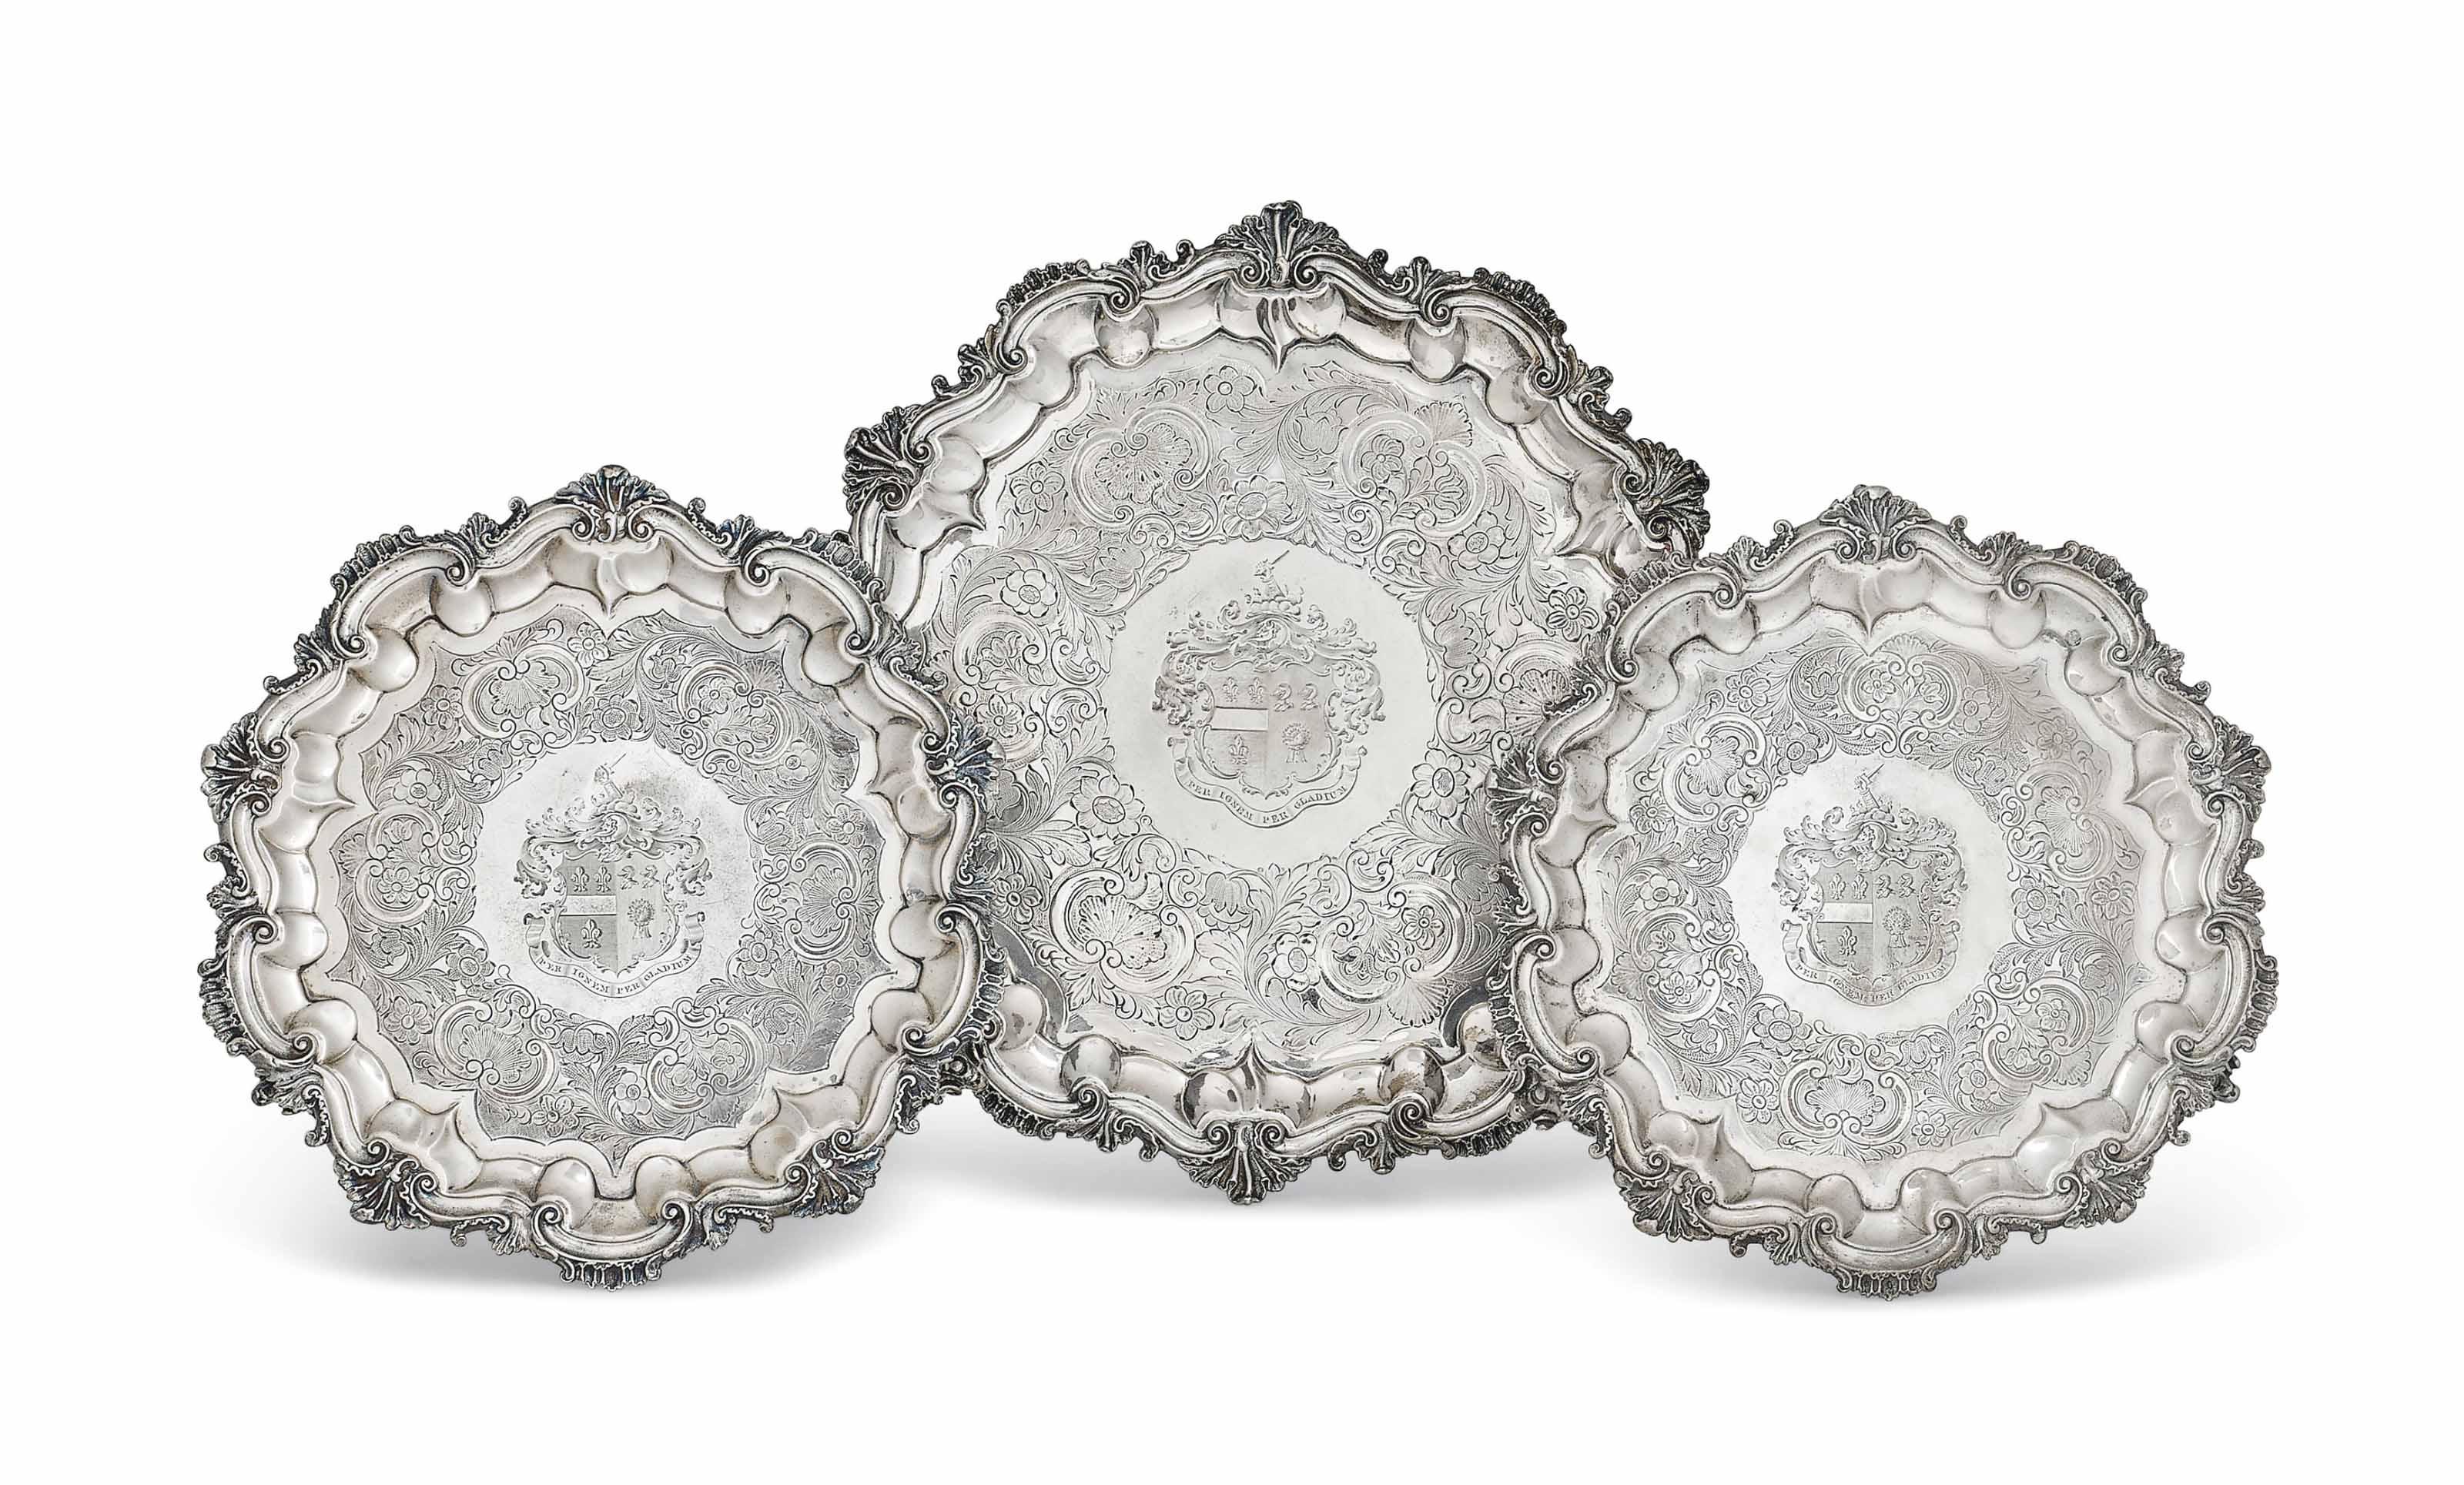 A SUITE OF THREE WILLIAM IV SILVER SALVERS